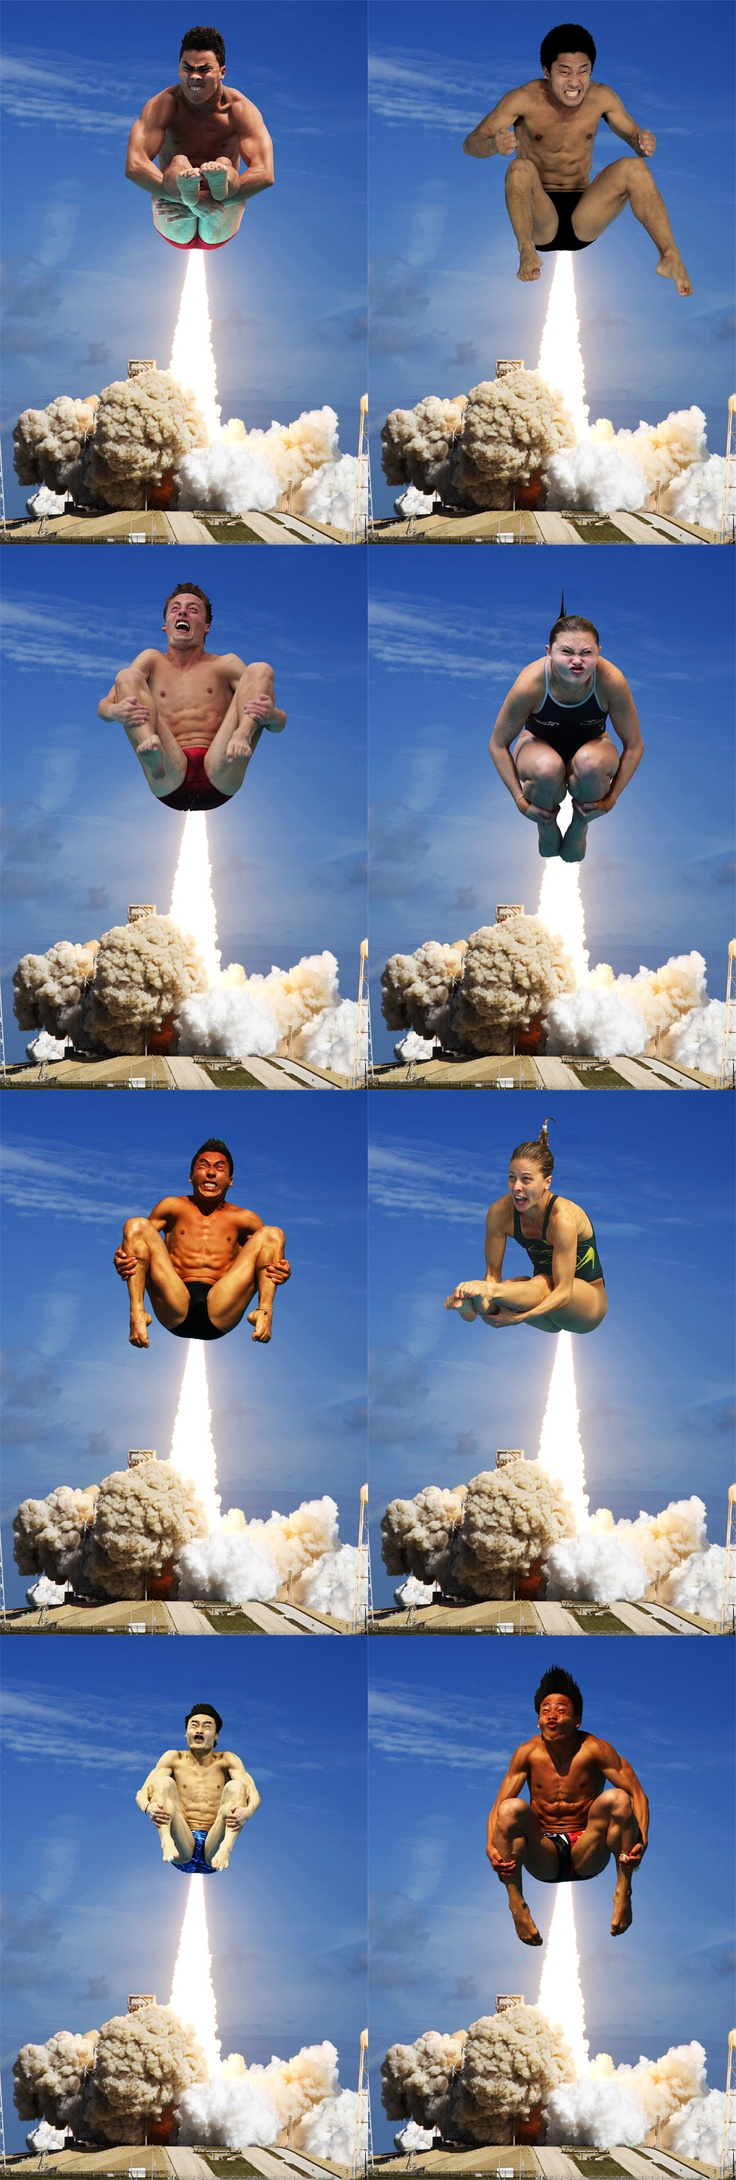 Olympic Divers MEME: Rocket Butt..hehehe